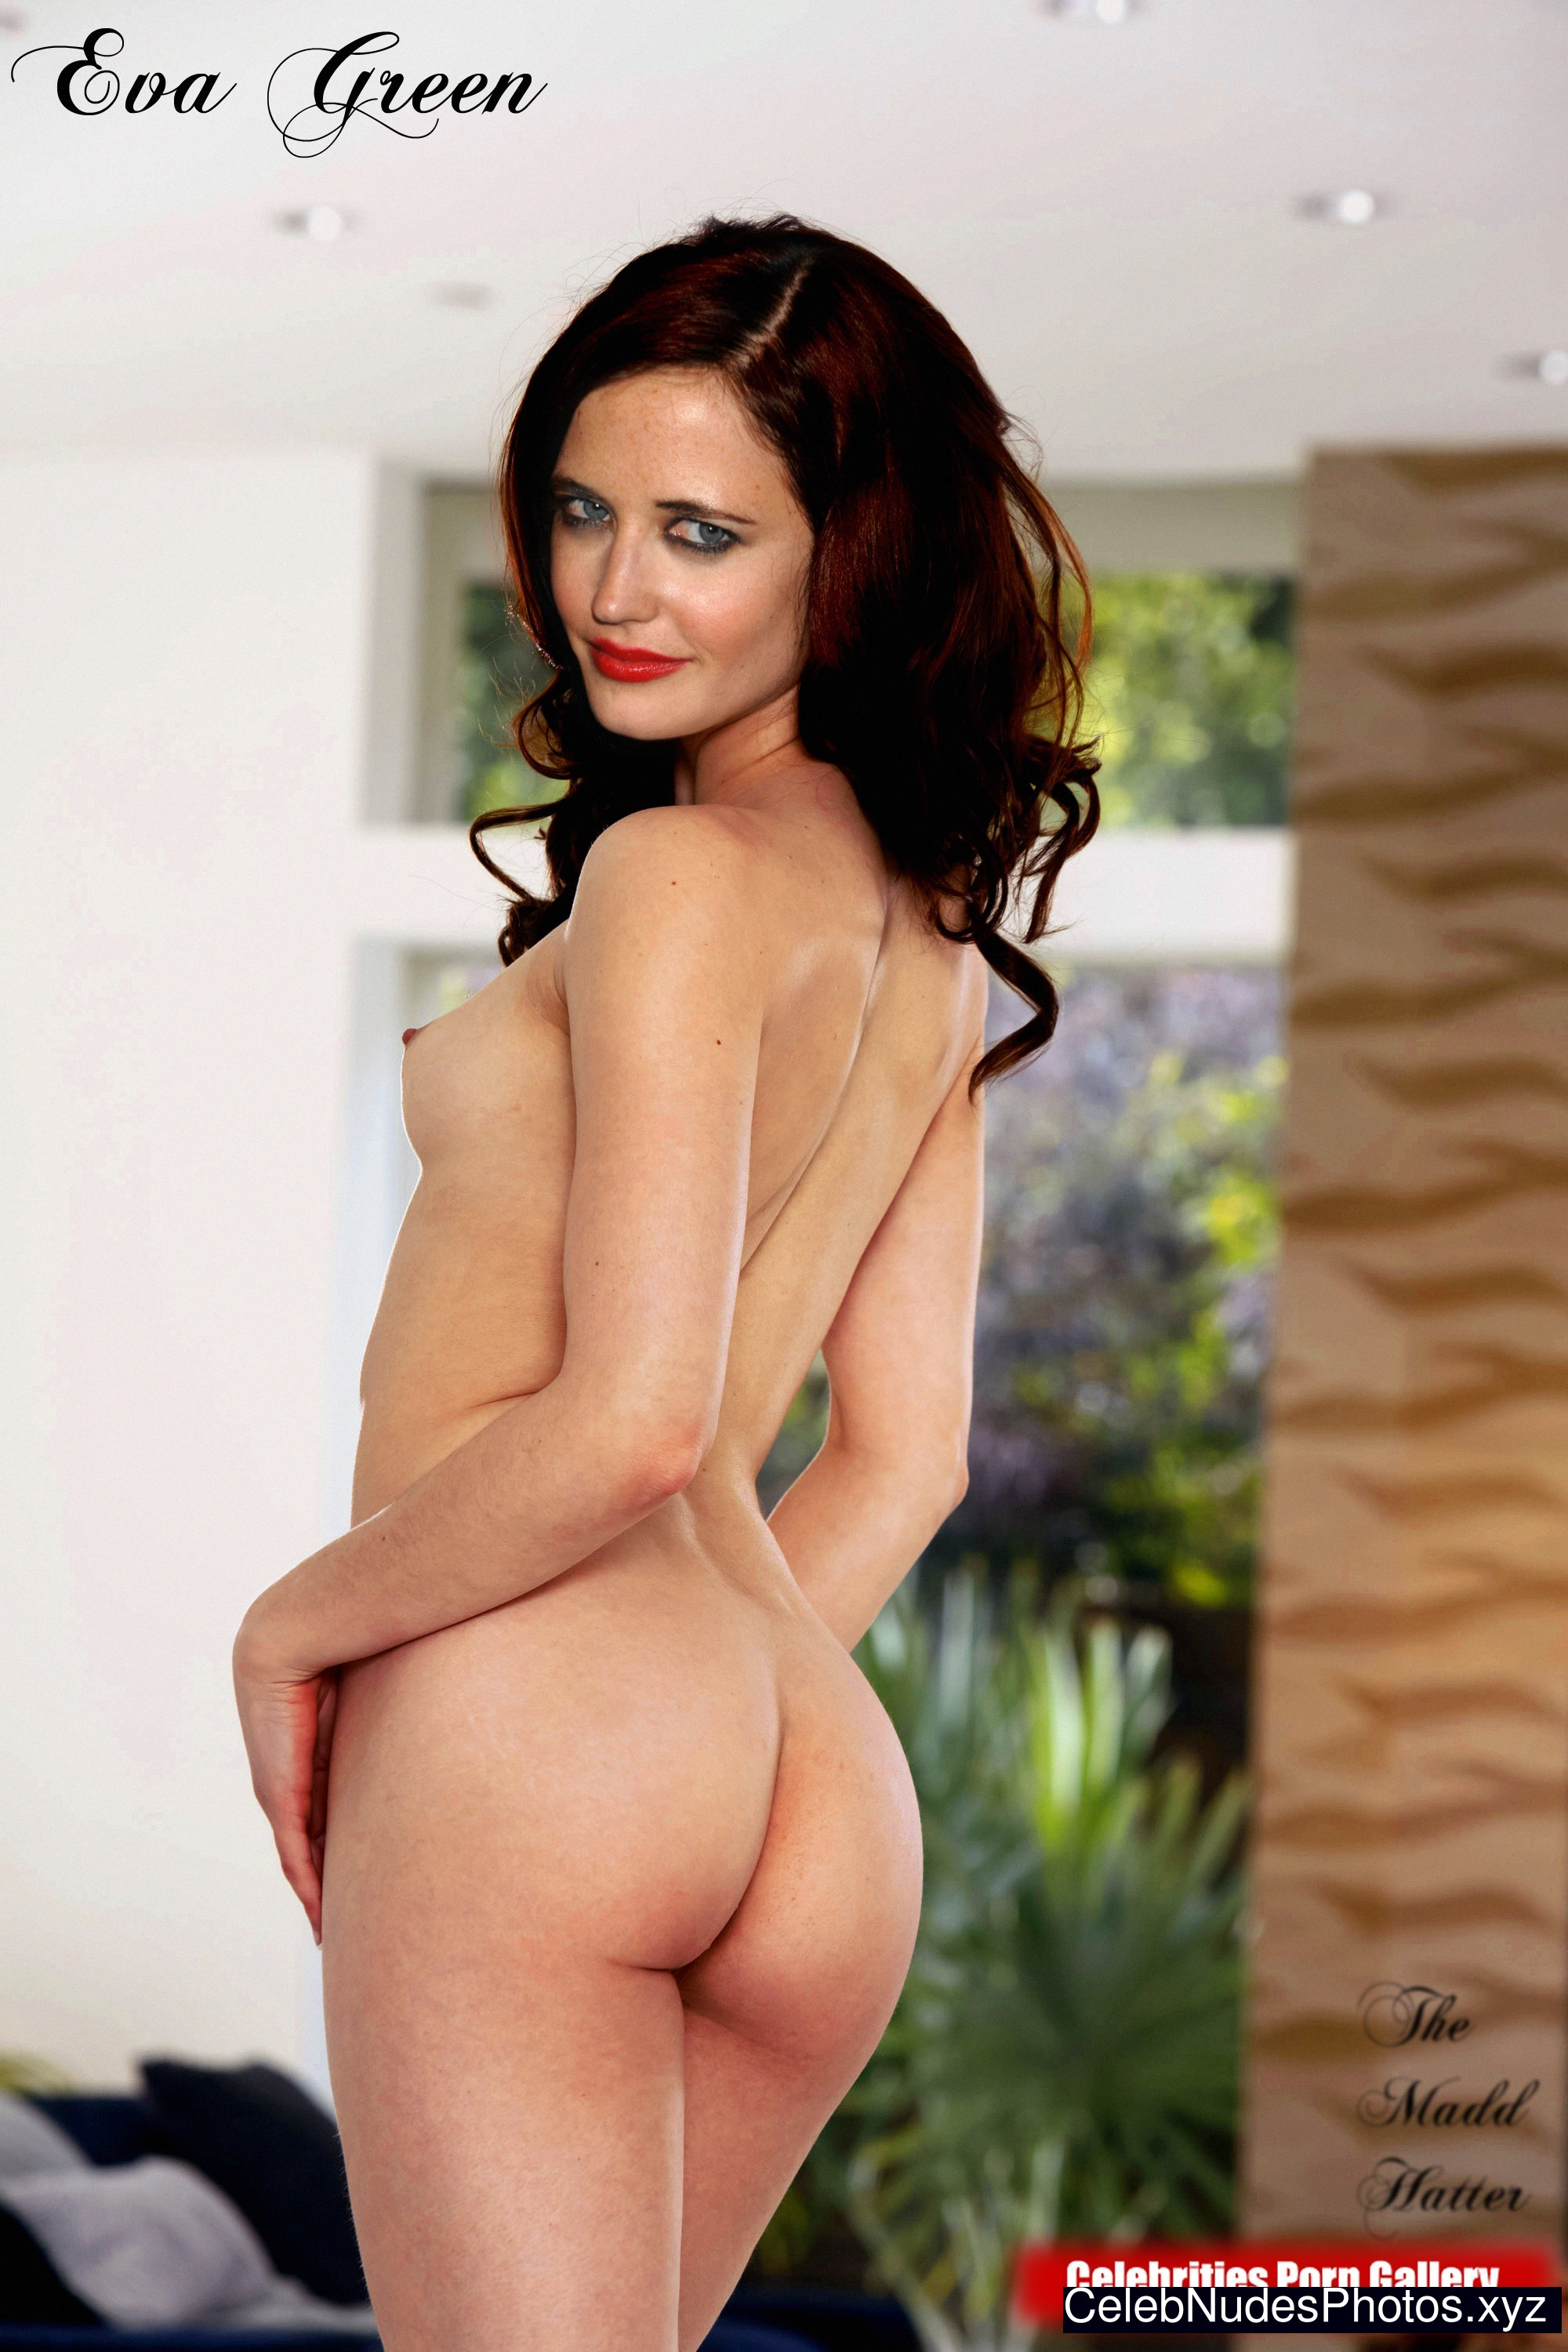 Gretchen real housewives nude